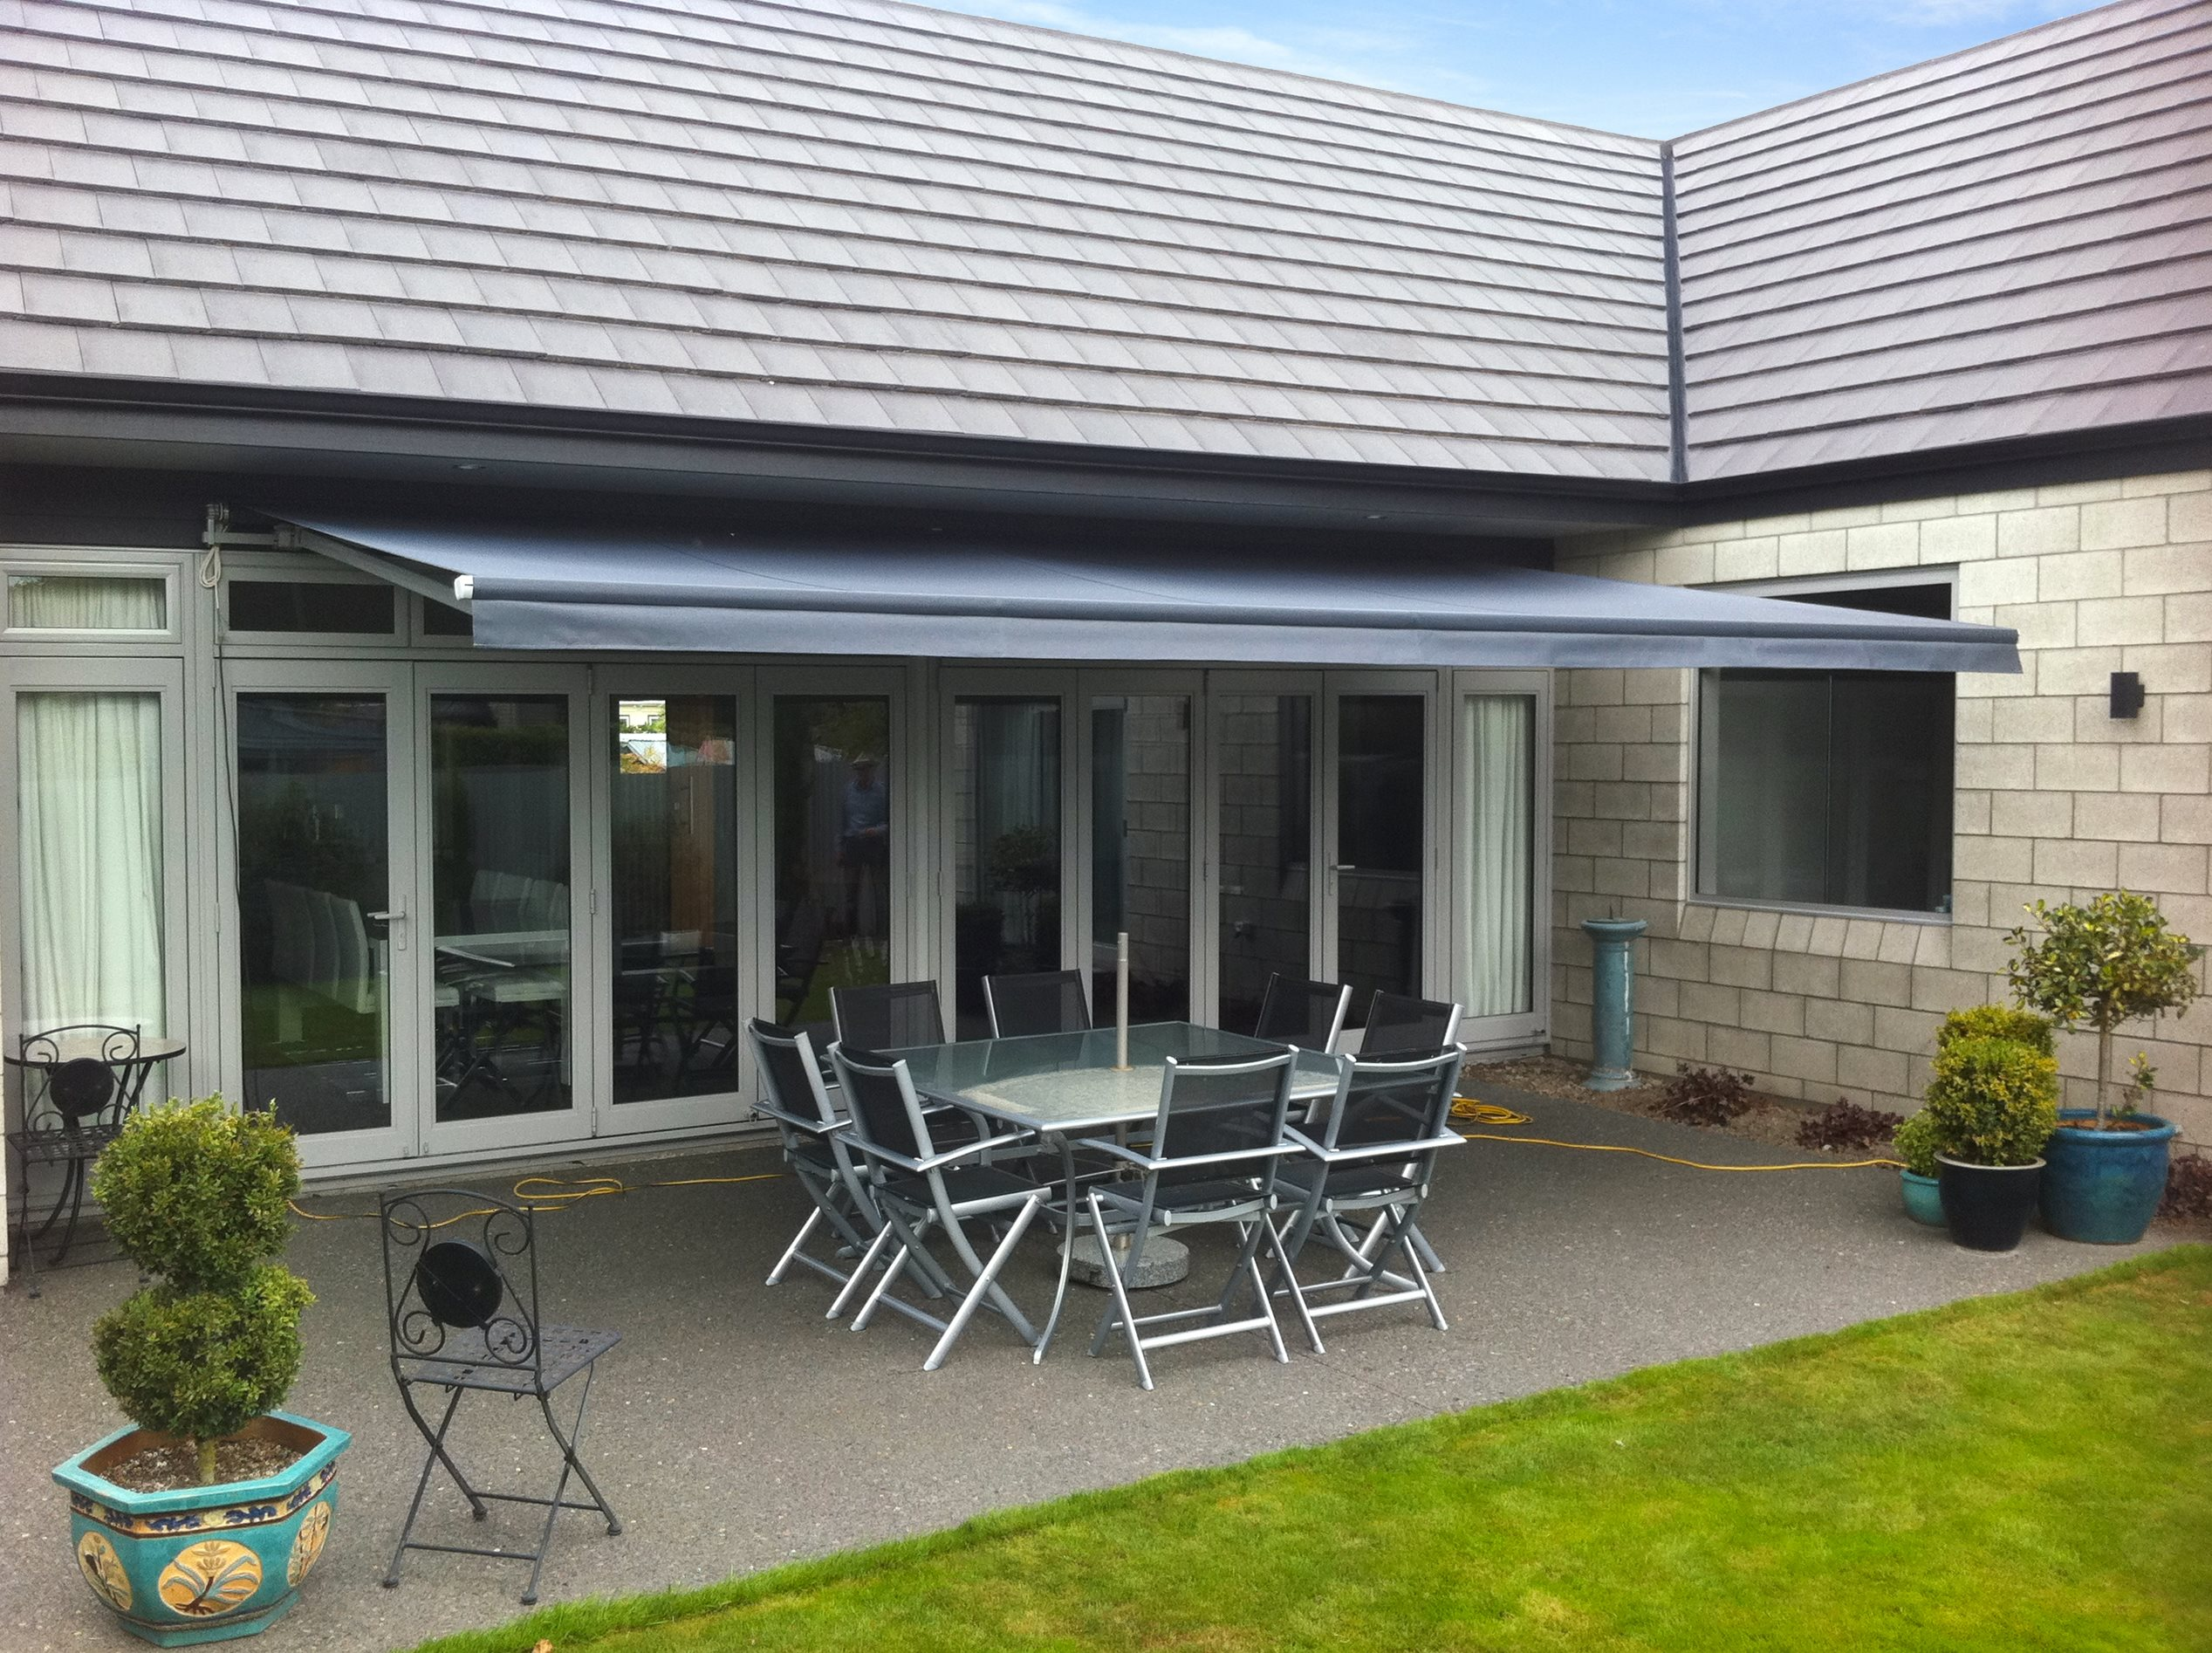 Euro Retractable awning open over dining table